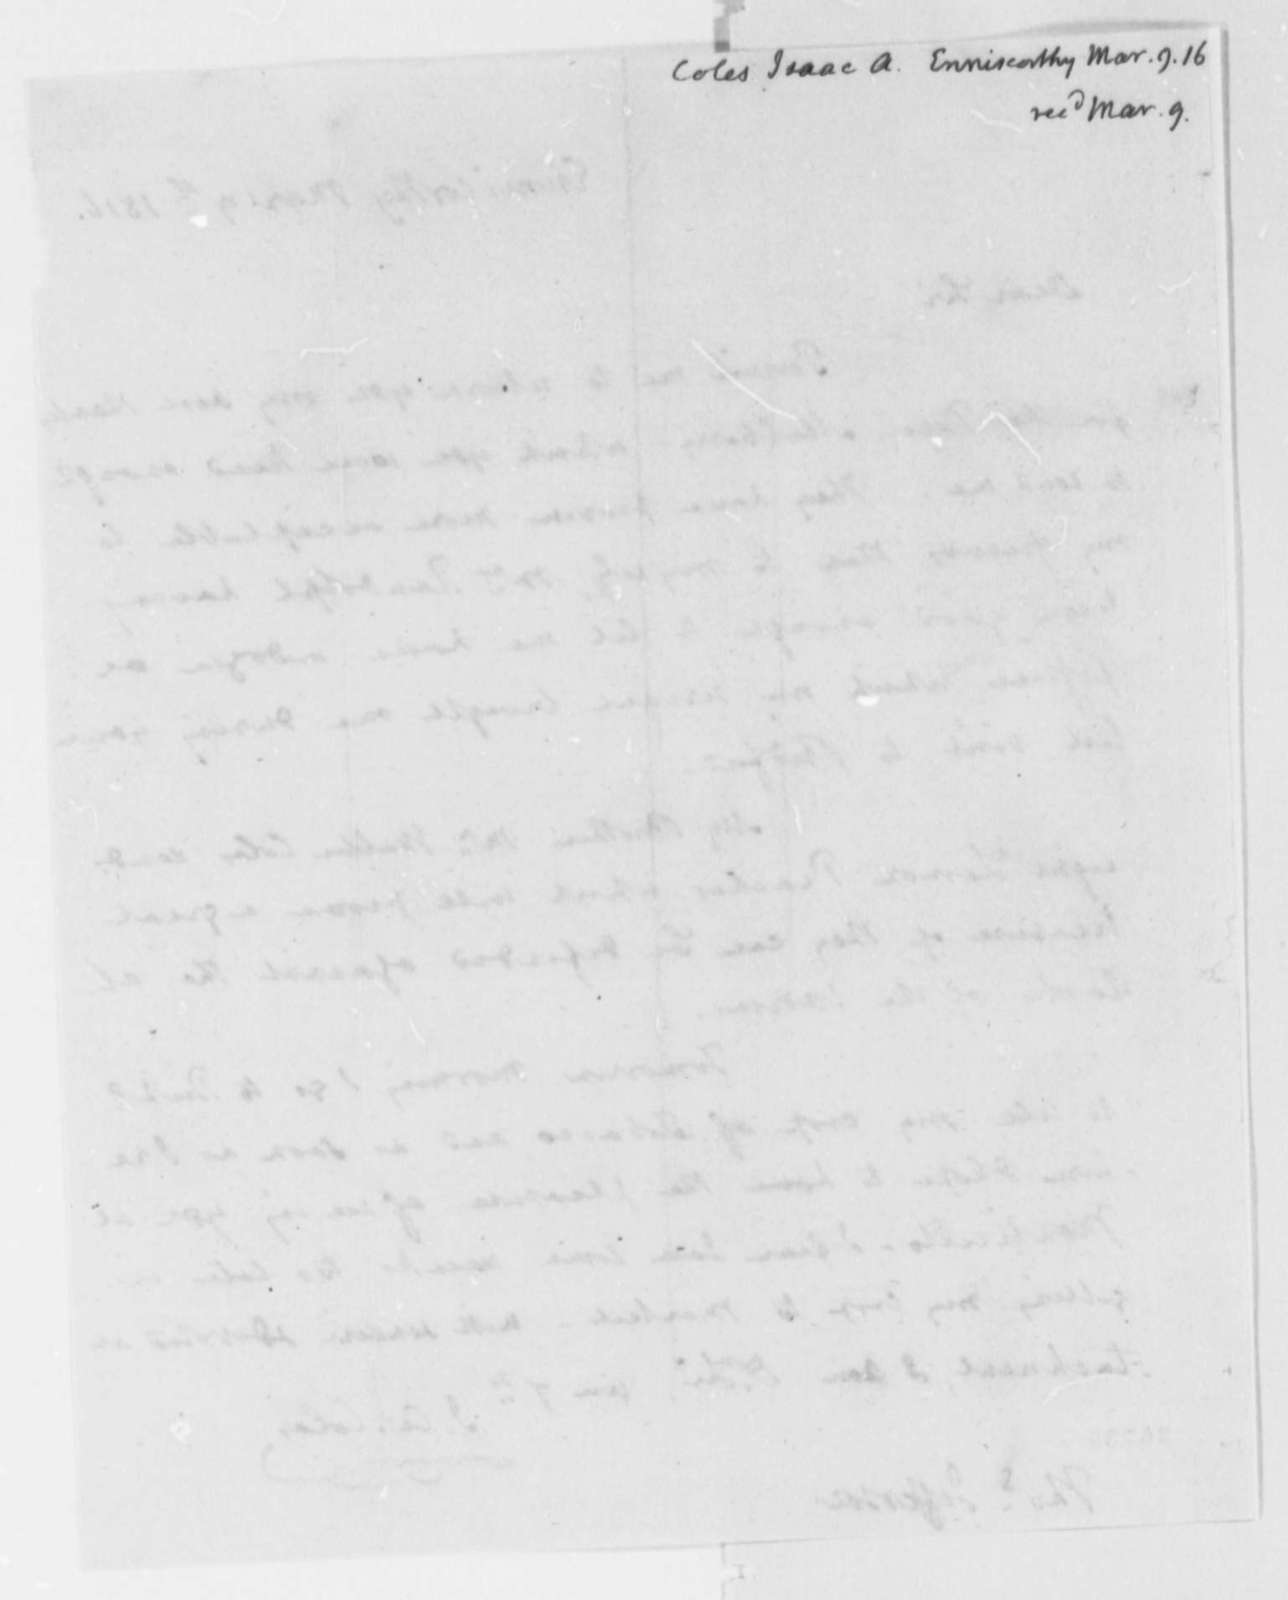 Isaac A. Coles to Thomas Jefferson, March 9, 1816